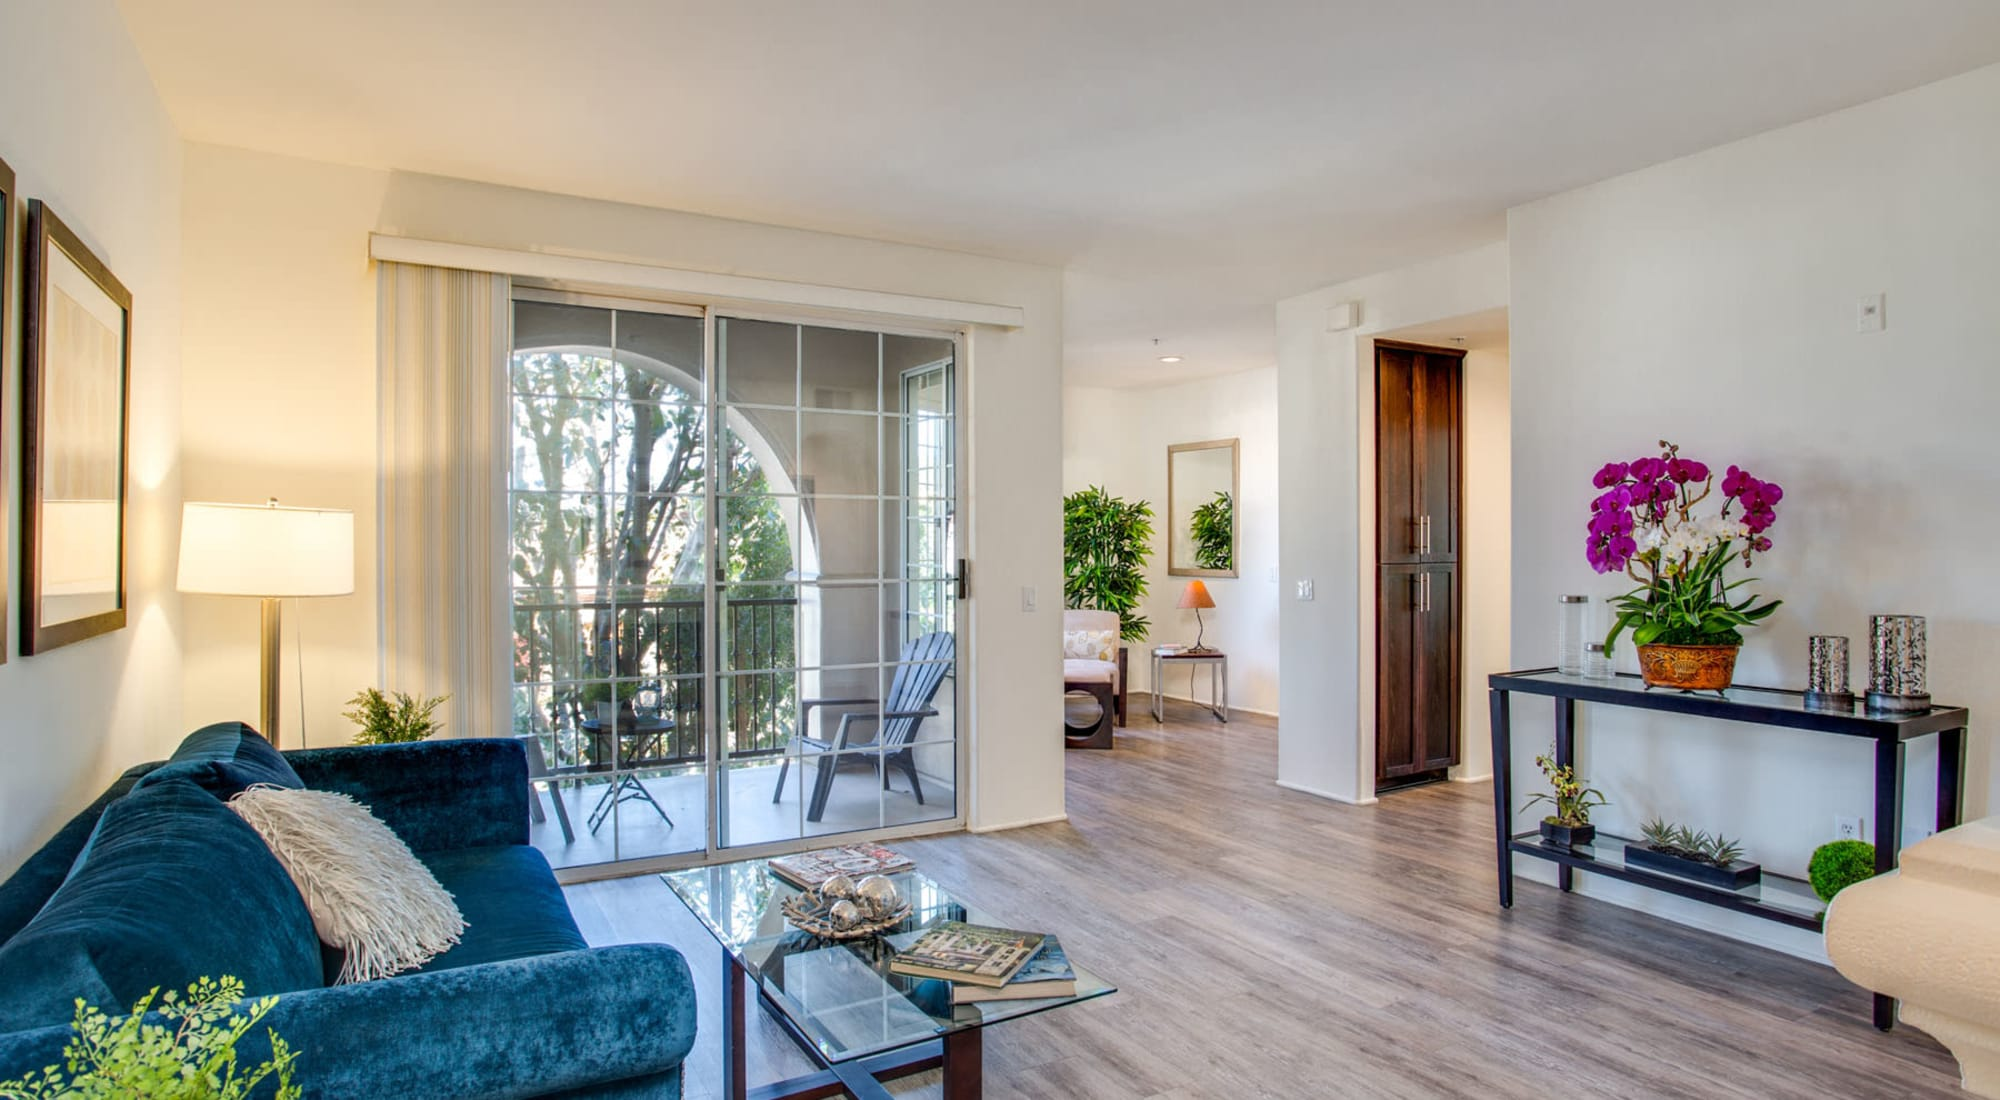 Model luxury home's well-furnished living area with sliding doors to the arched private balcony outside at L'Estancia in Studio City, California